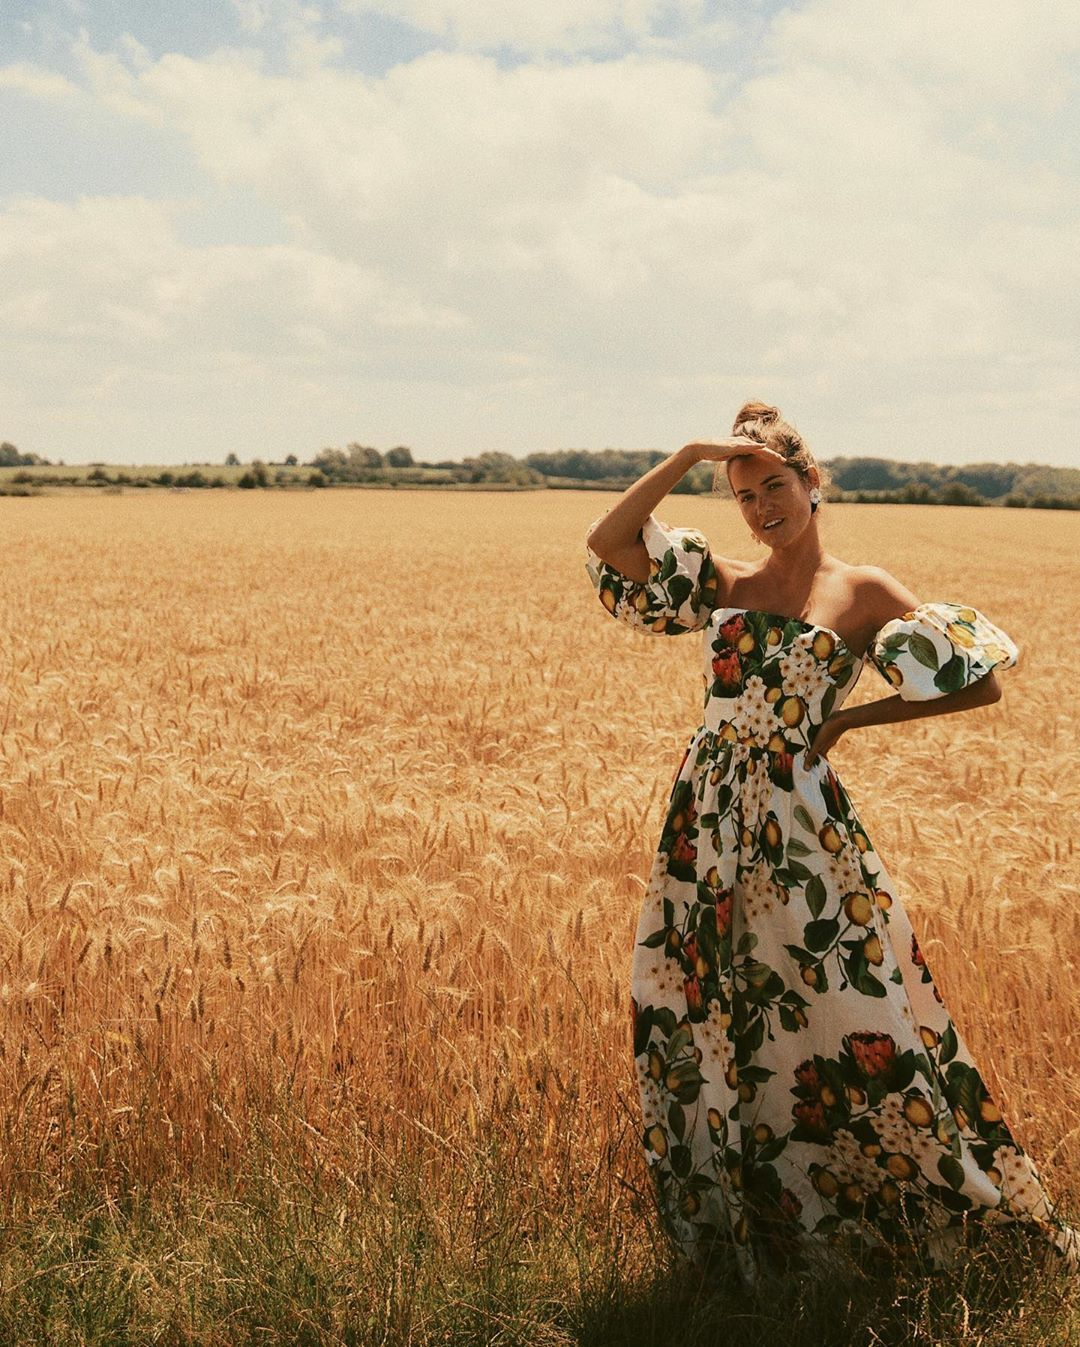 Rosie The Londoner On Instagram Out Standing In My Field Ad Shop The Bran D New Styles From Harveynichols Just In Ti Wedding Guest Style Style Heatwave [ 1347 x 1080 Pixel ]